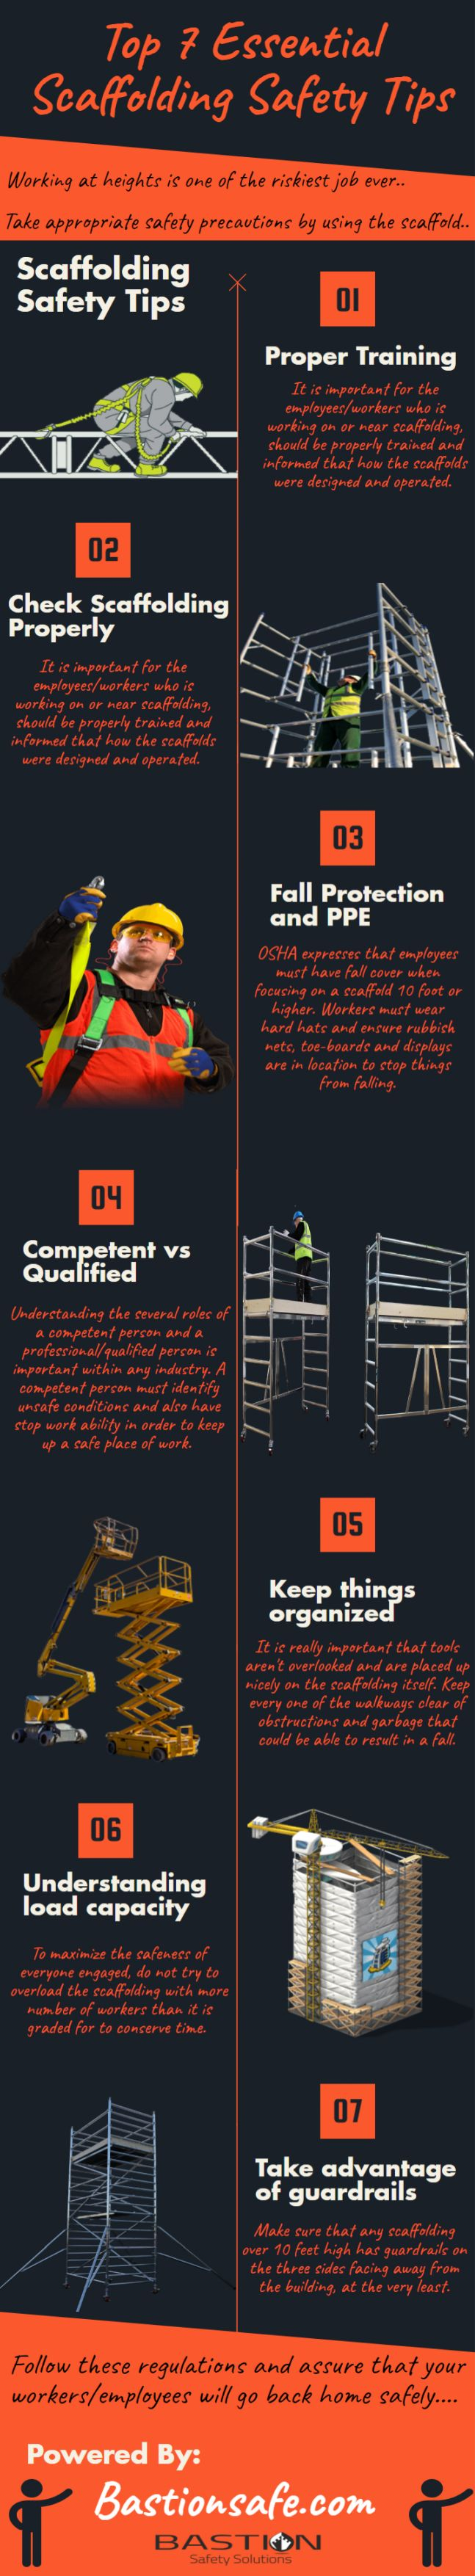 In this infographic we describe the Scaffolding safety Tips that helps to prevent injuries and accidents on the worksite. To know more contact Bastion safety solutions.